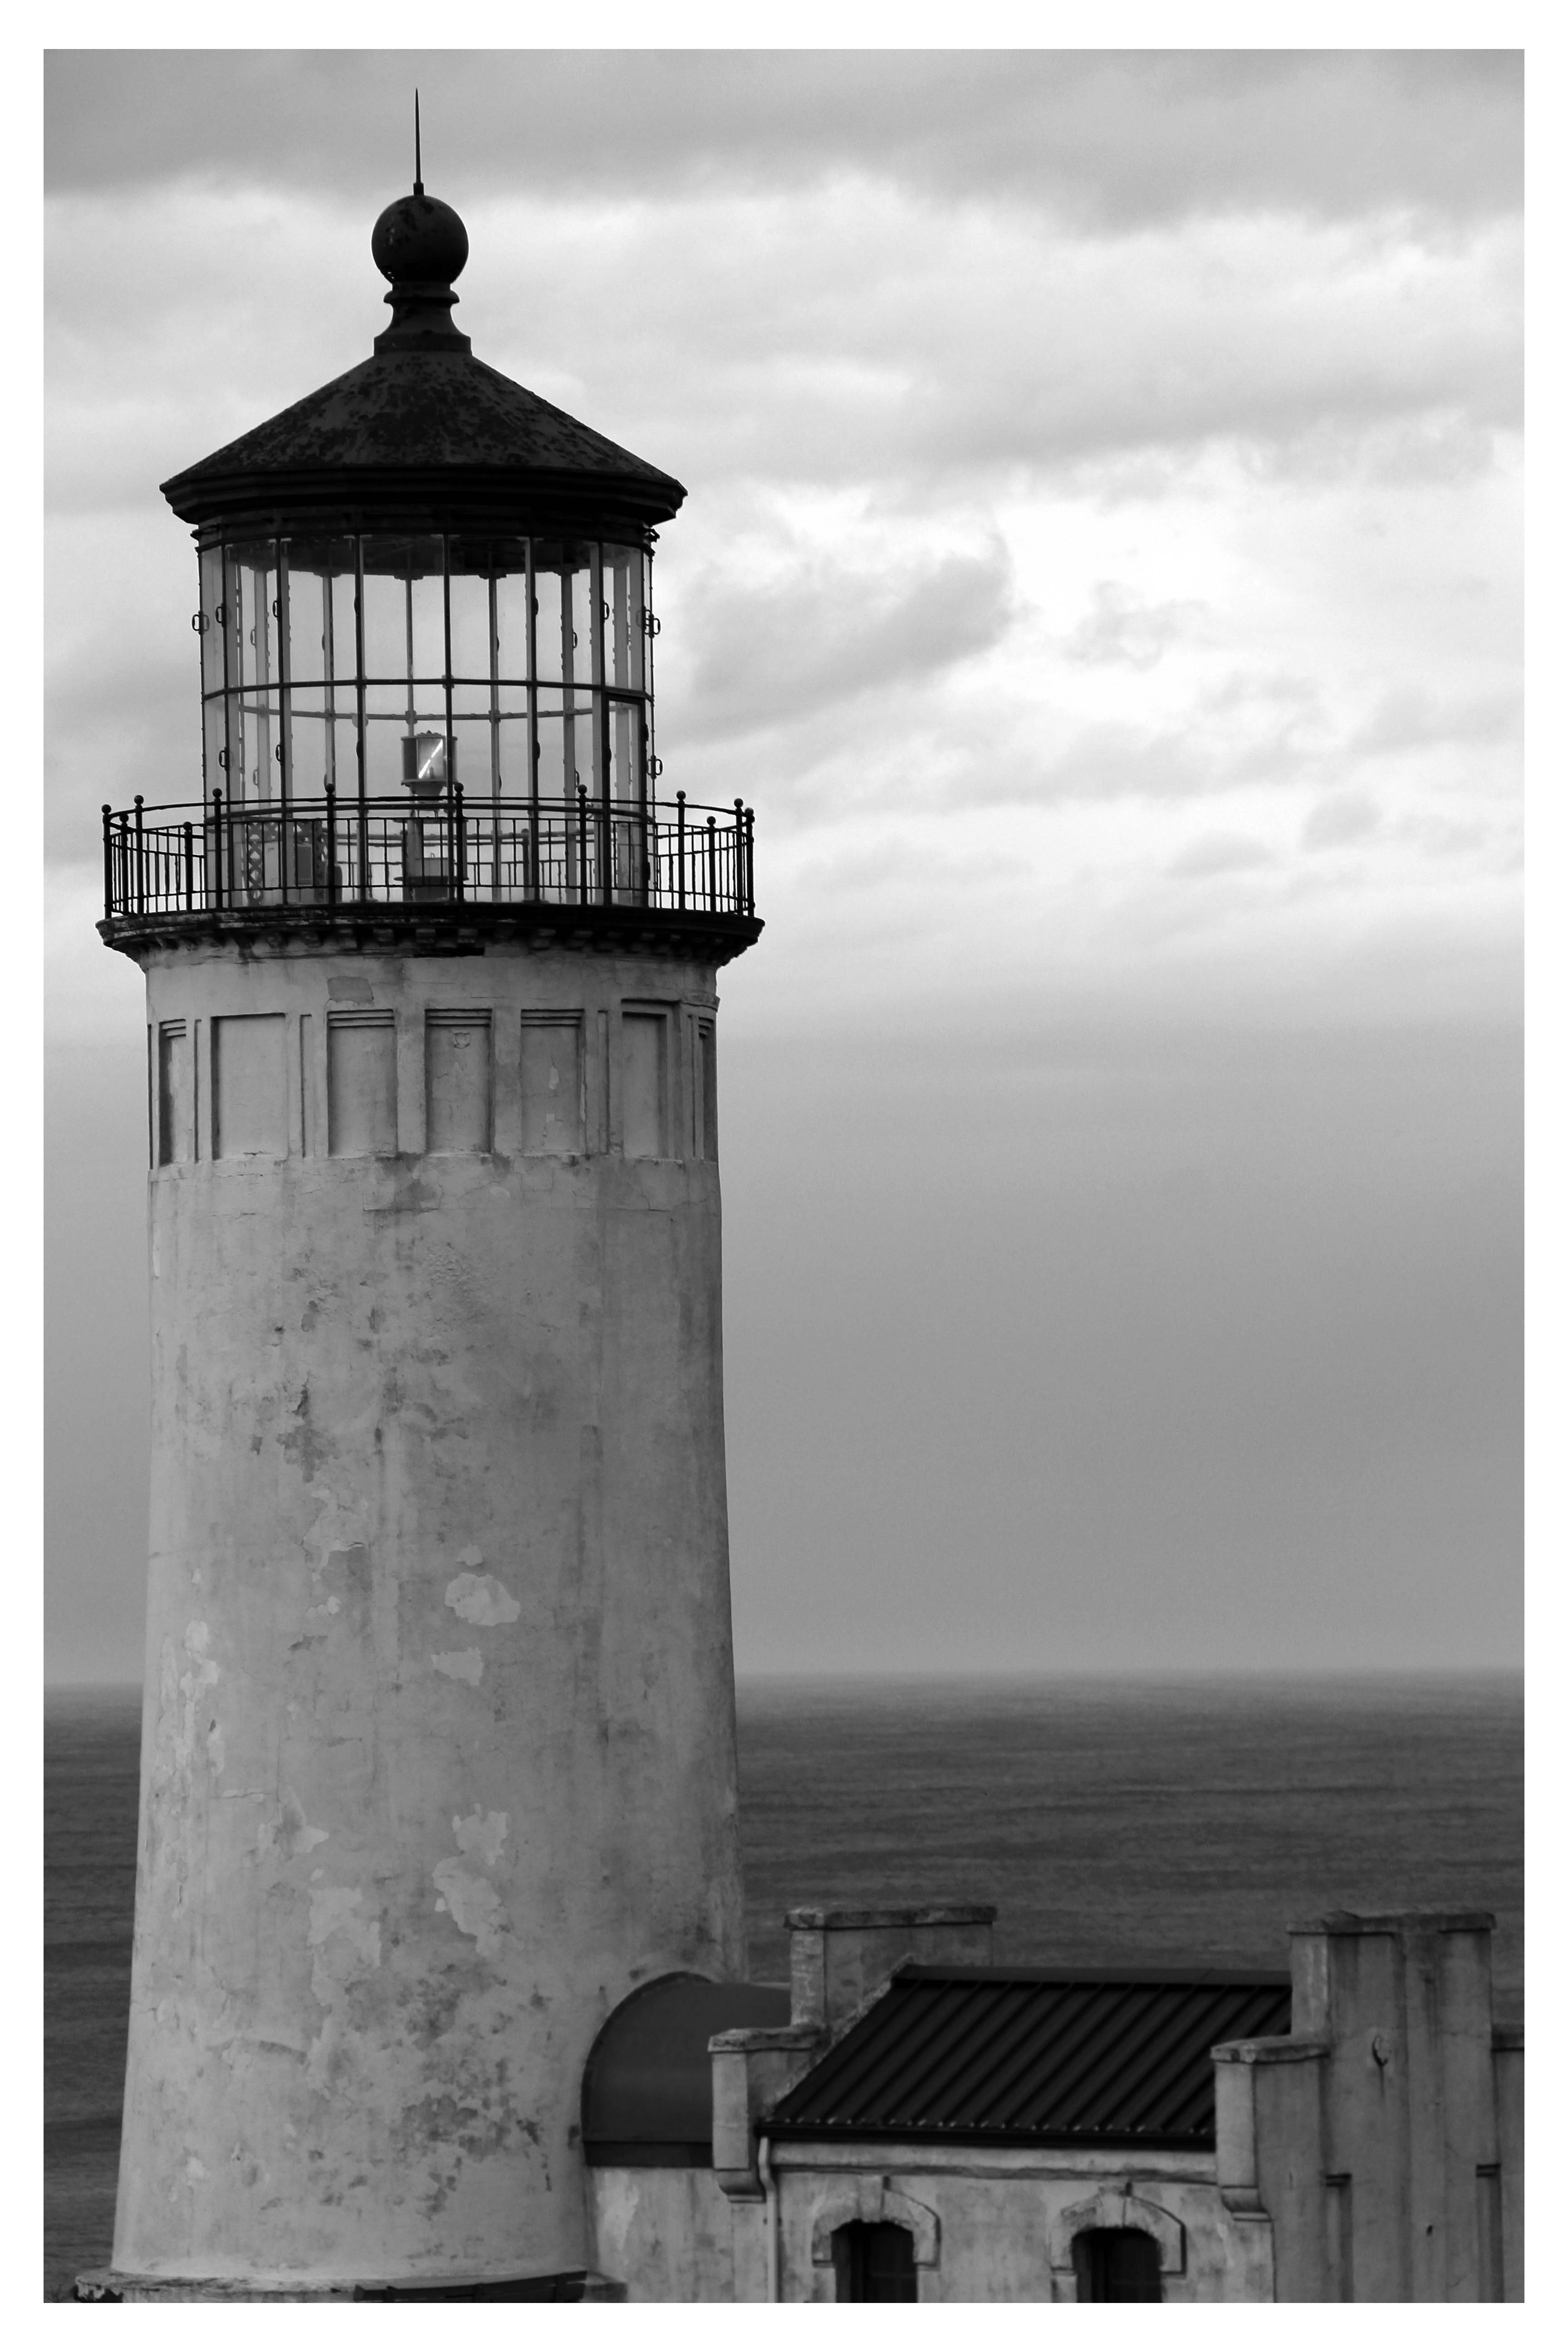 cape disappointment my photo essay justjamie a1 a2 a3